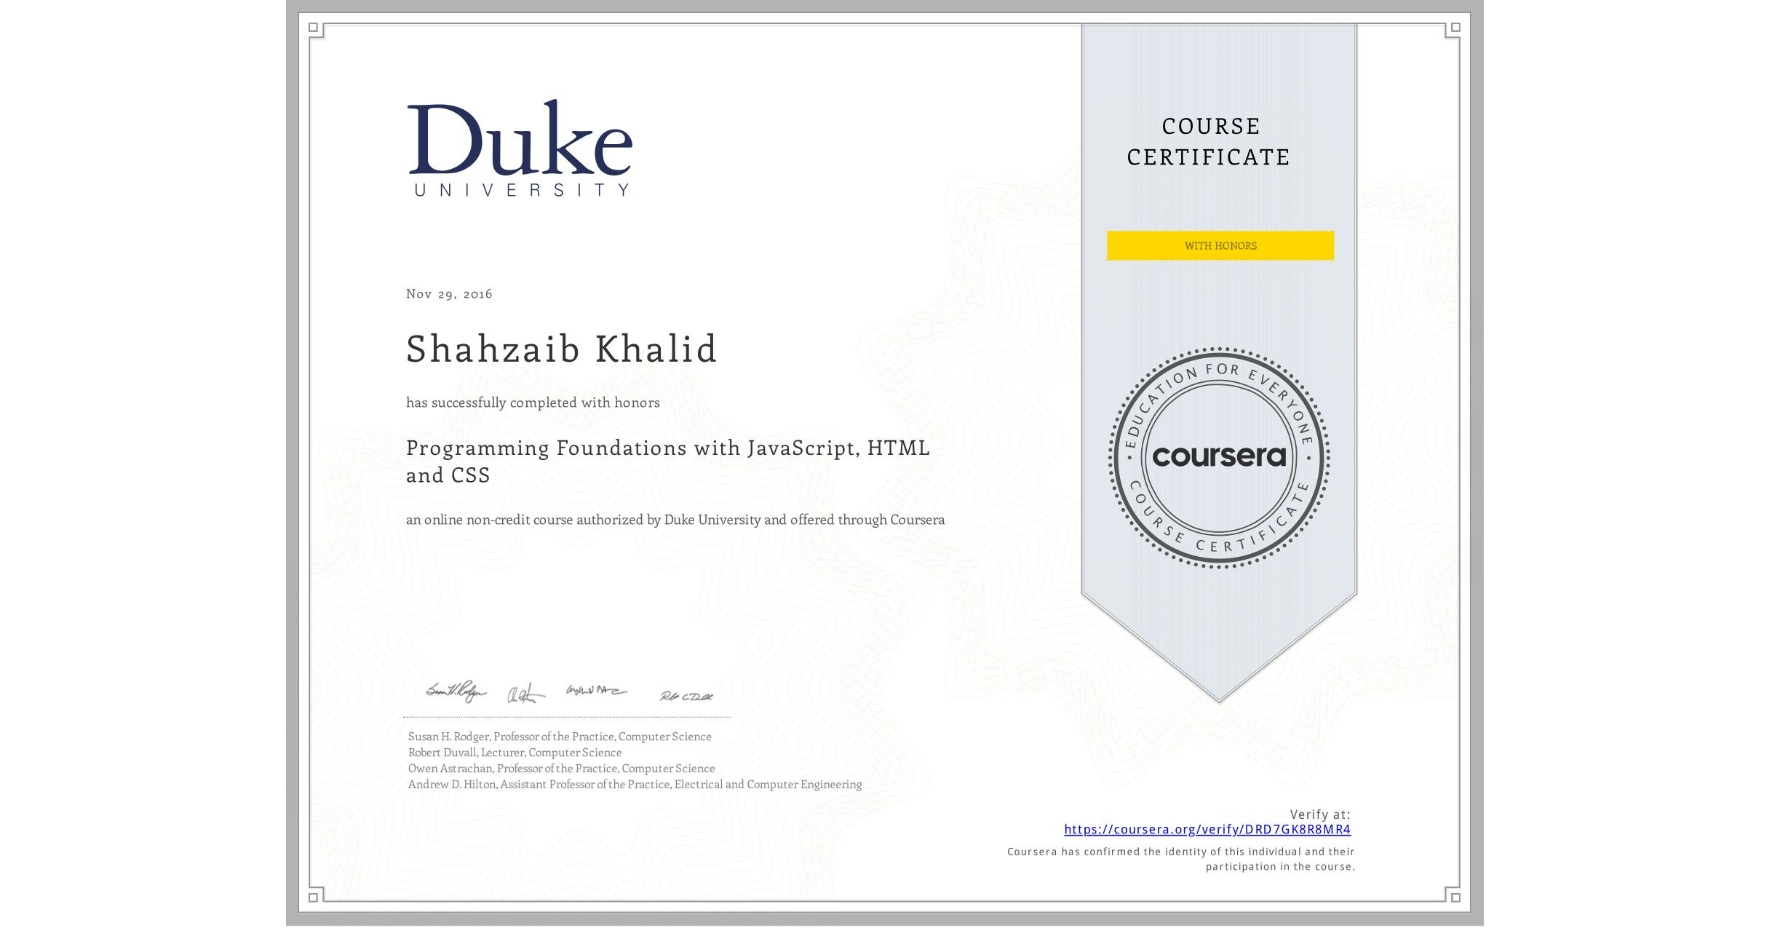 View certificate for Shahzaib Khalid, Programming Foundations with JavaScript, HTML and CSS, an online non-credit course authorized by Duke University and offered through Coursera